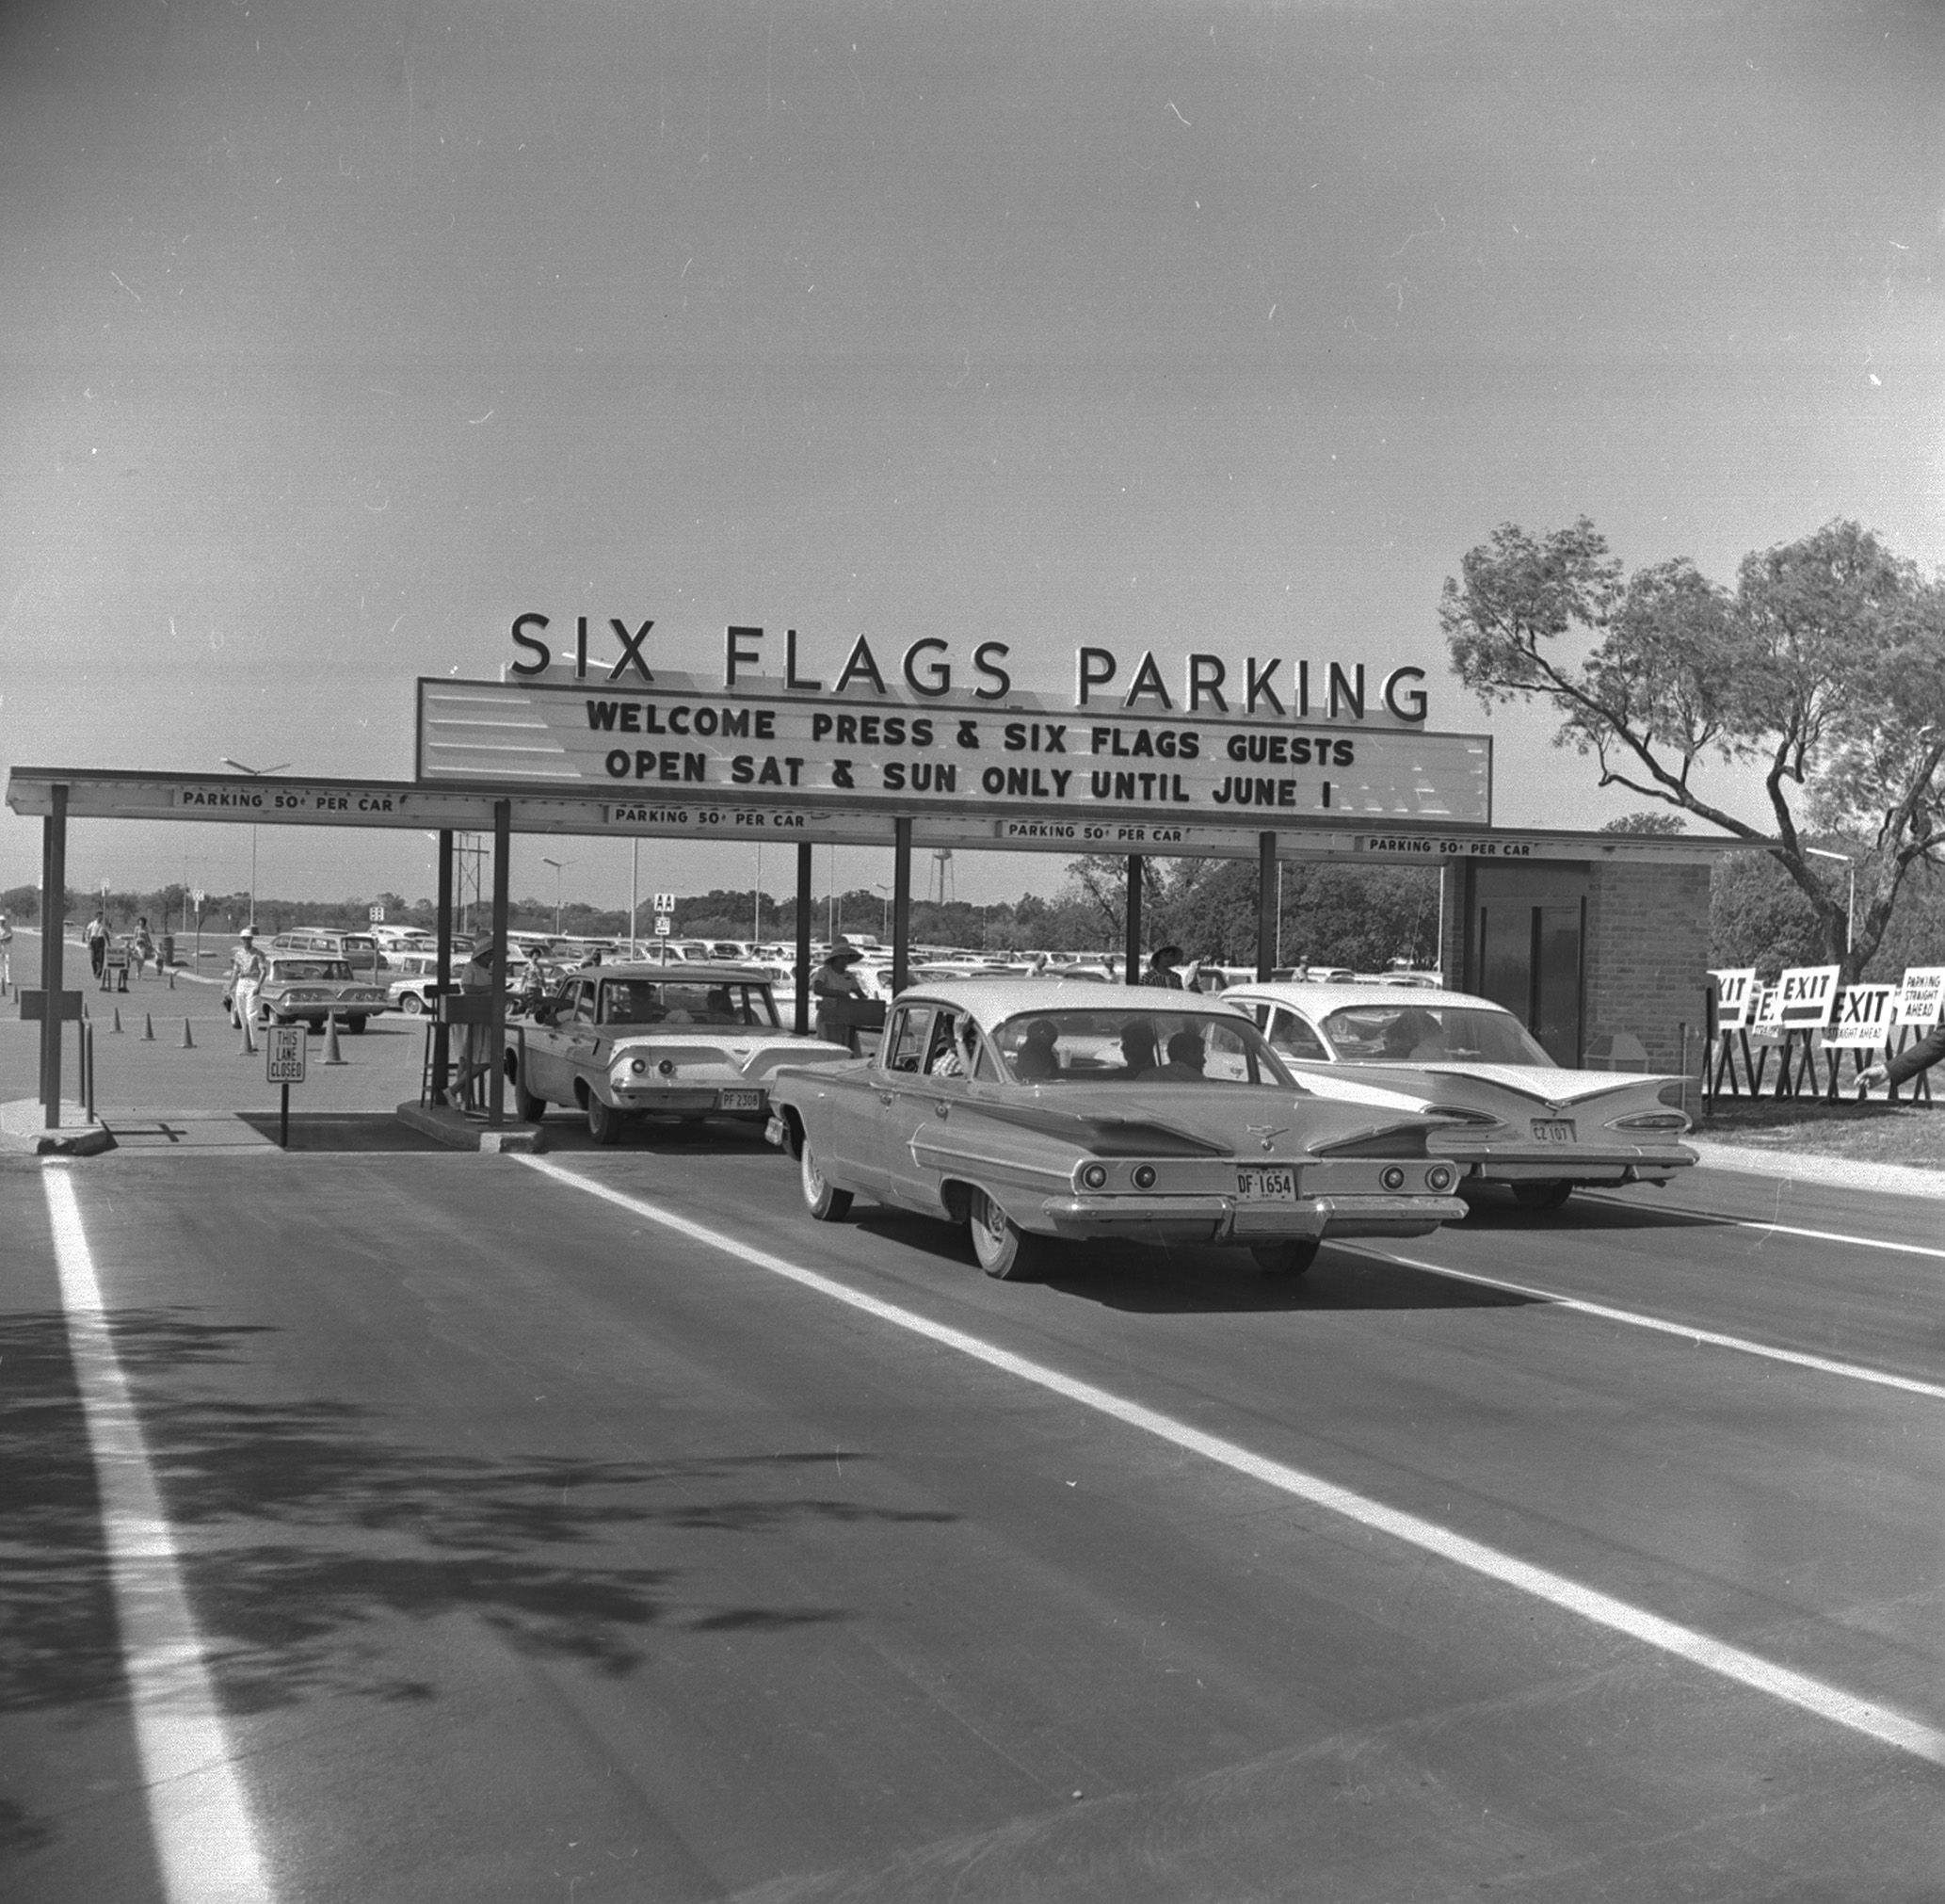 Cars Entering Under Sign Welcome To Six Flags Parking At Six Flags Over Texas Park On Opening Day 04 22 1963 6 Six Flags Over Texas Six Flags Nightlife Travel